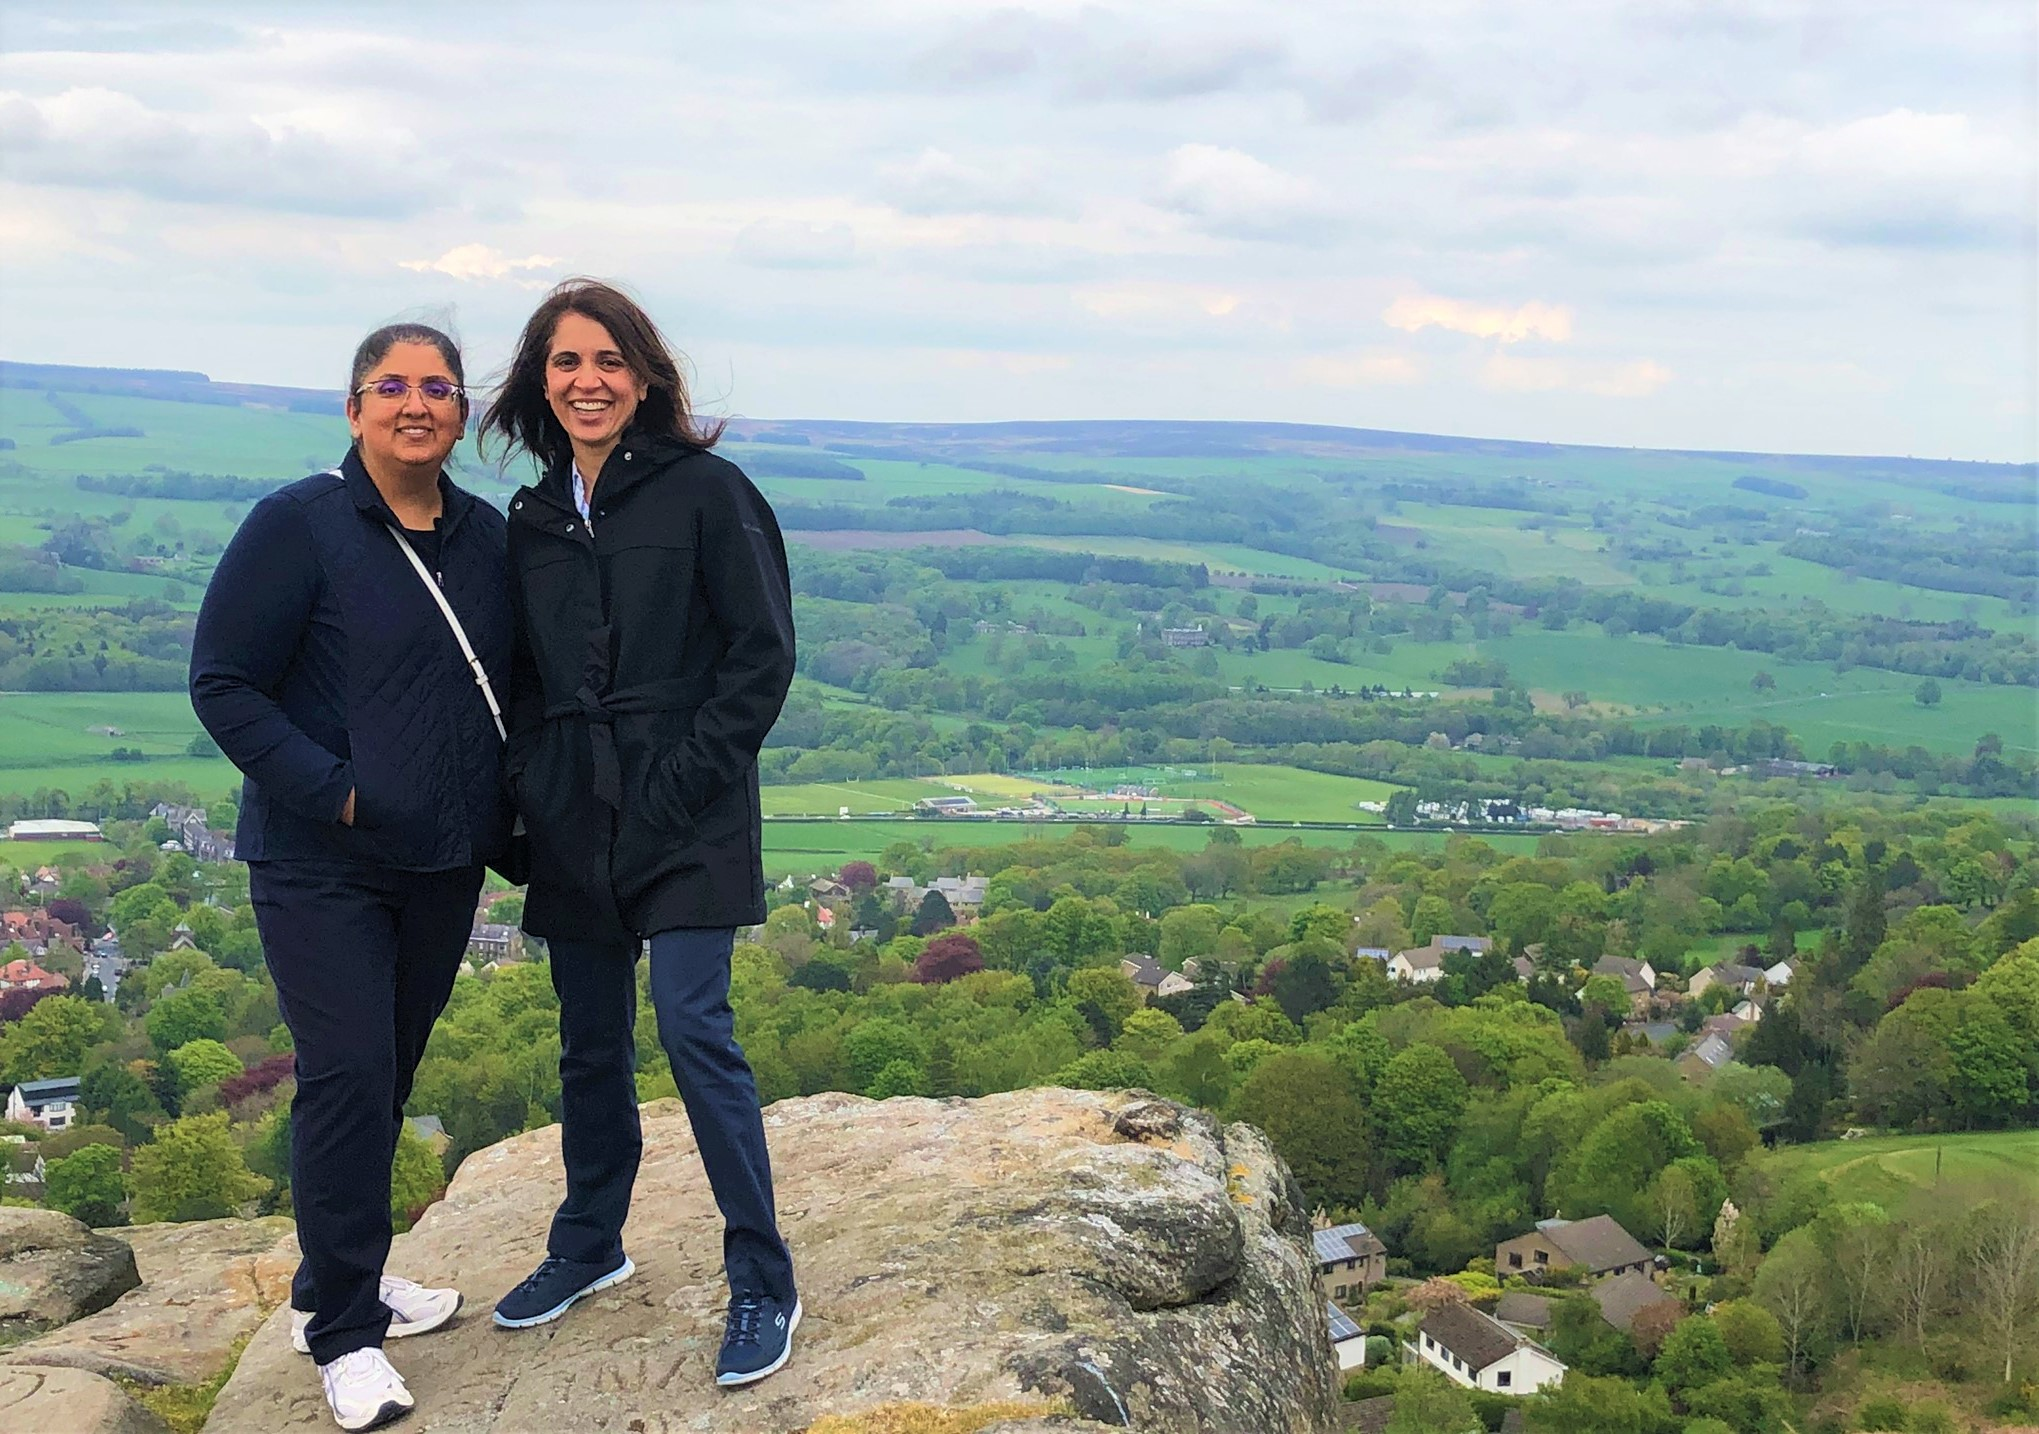 COA ABC fellows atop the Cow and Calf rock formation in Yorkshire